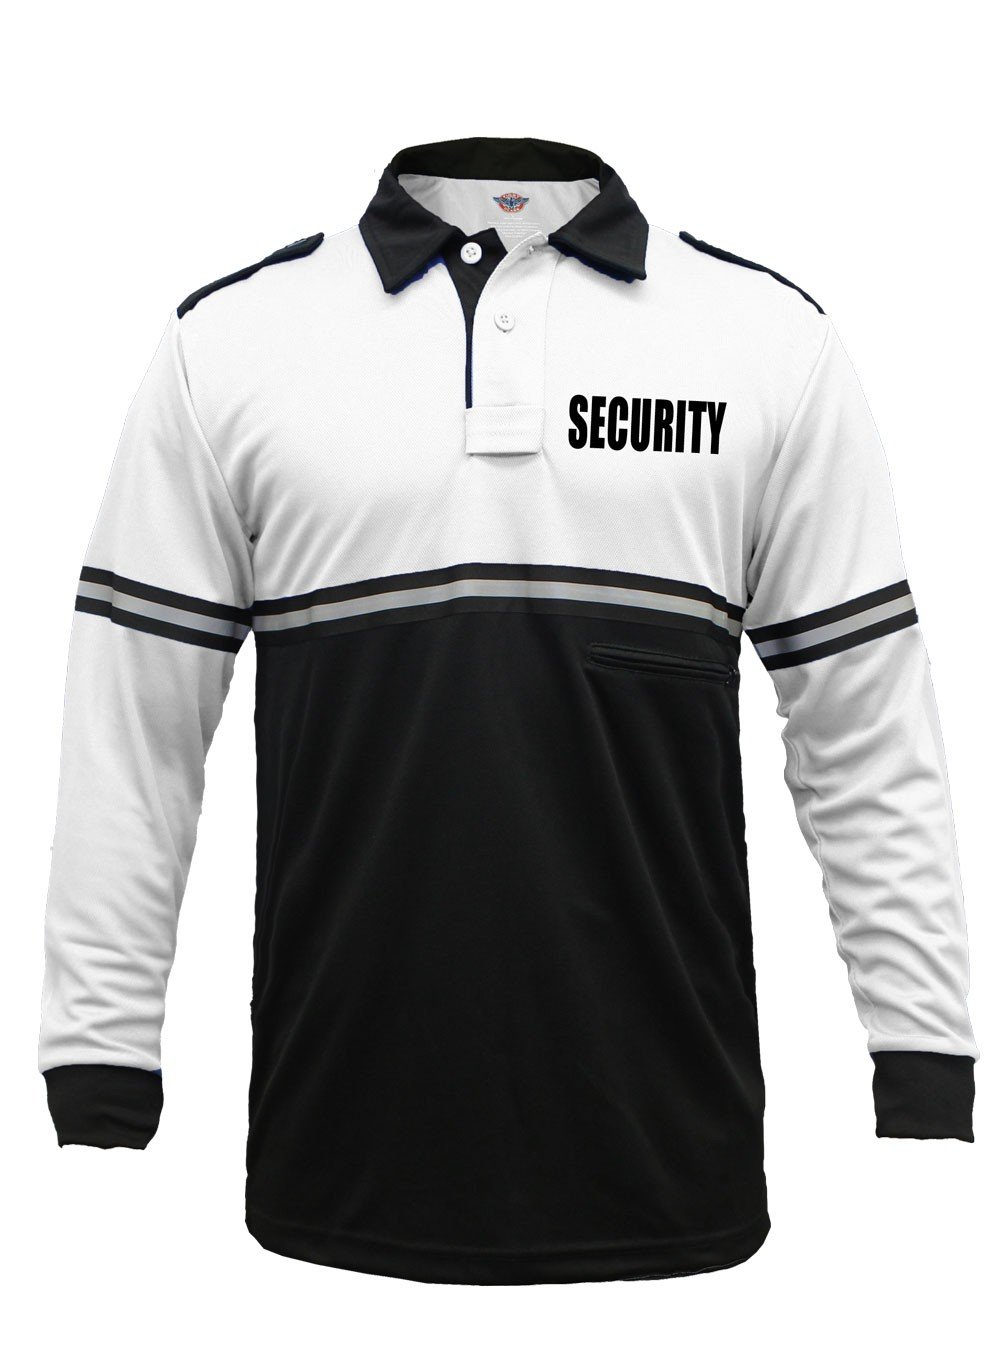 cb9c5dd0 Black Security Polo Shirts